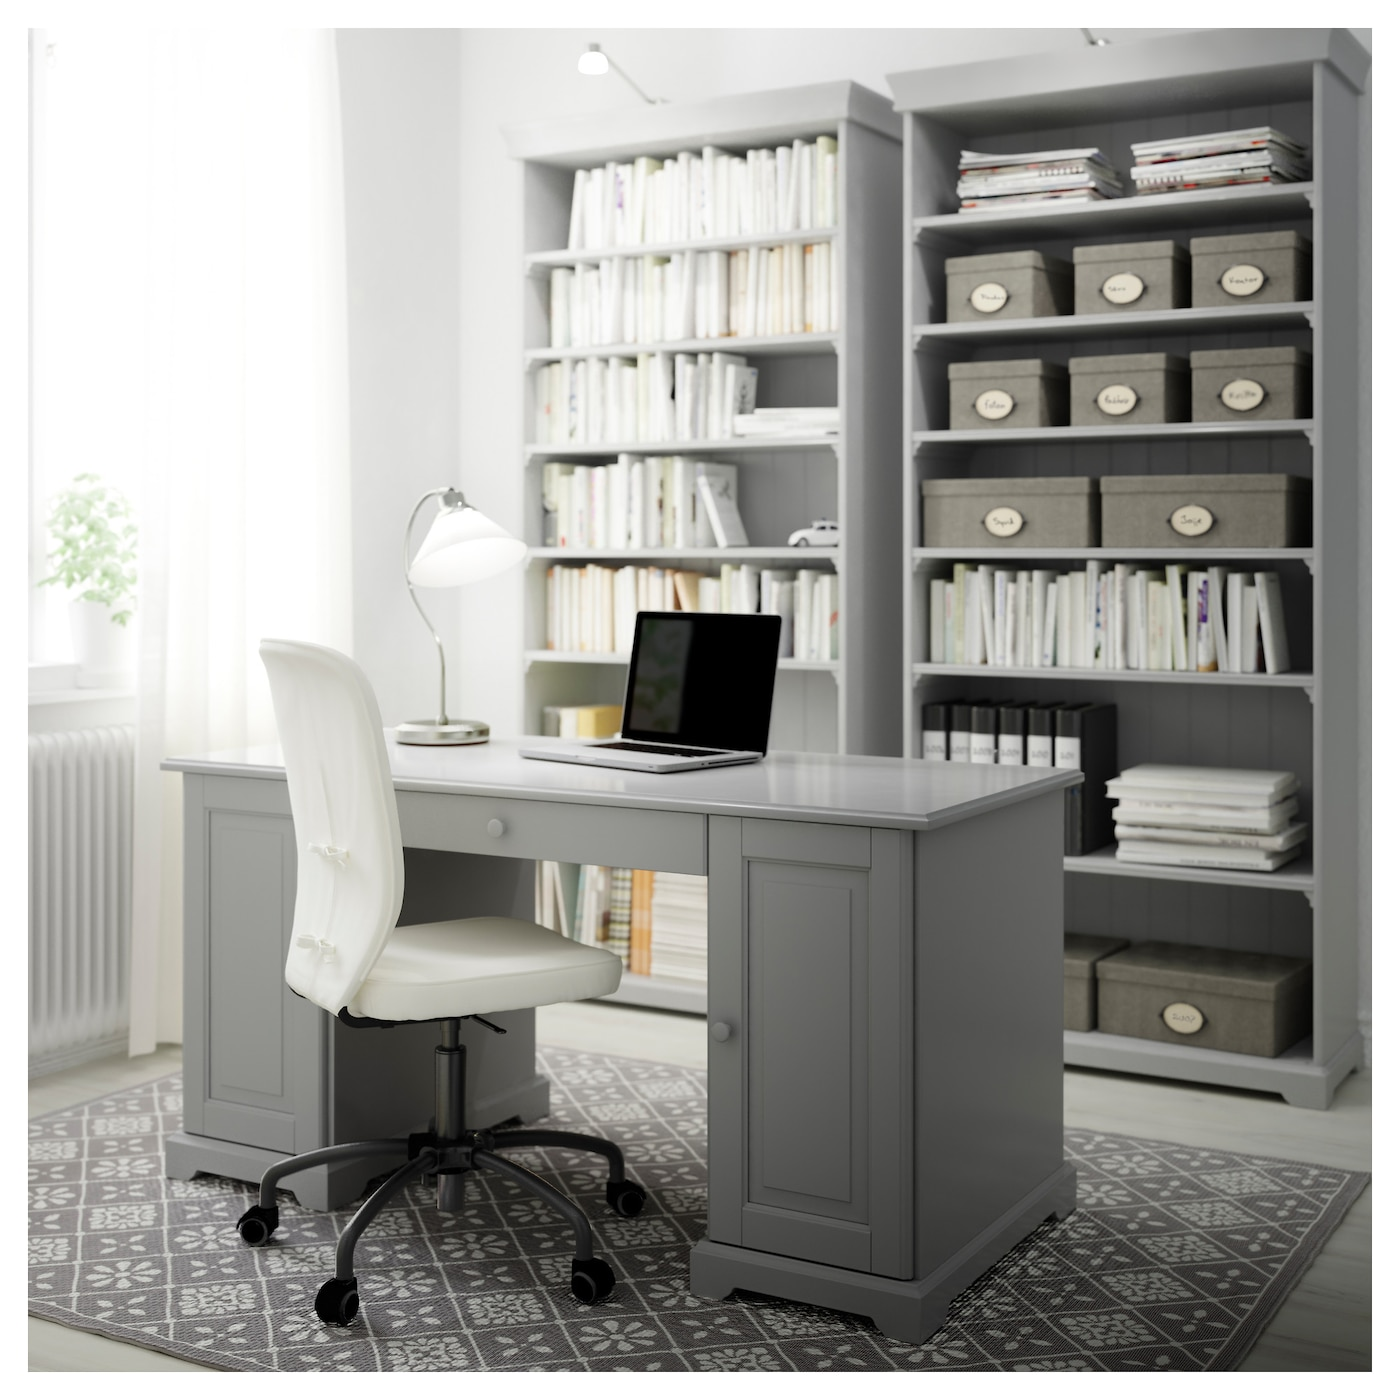 office furniture ikea liatorp bookcase grey 96 x 214 cm ikea 23931